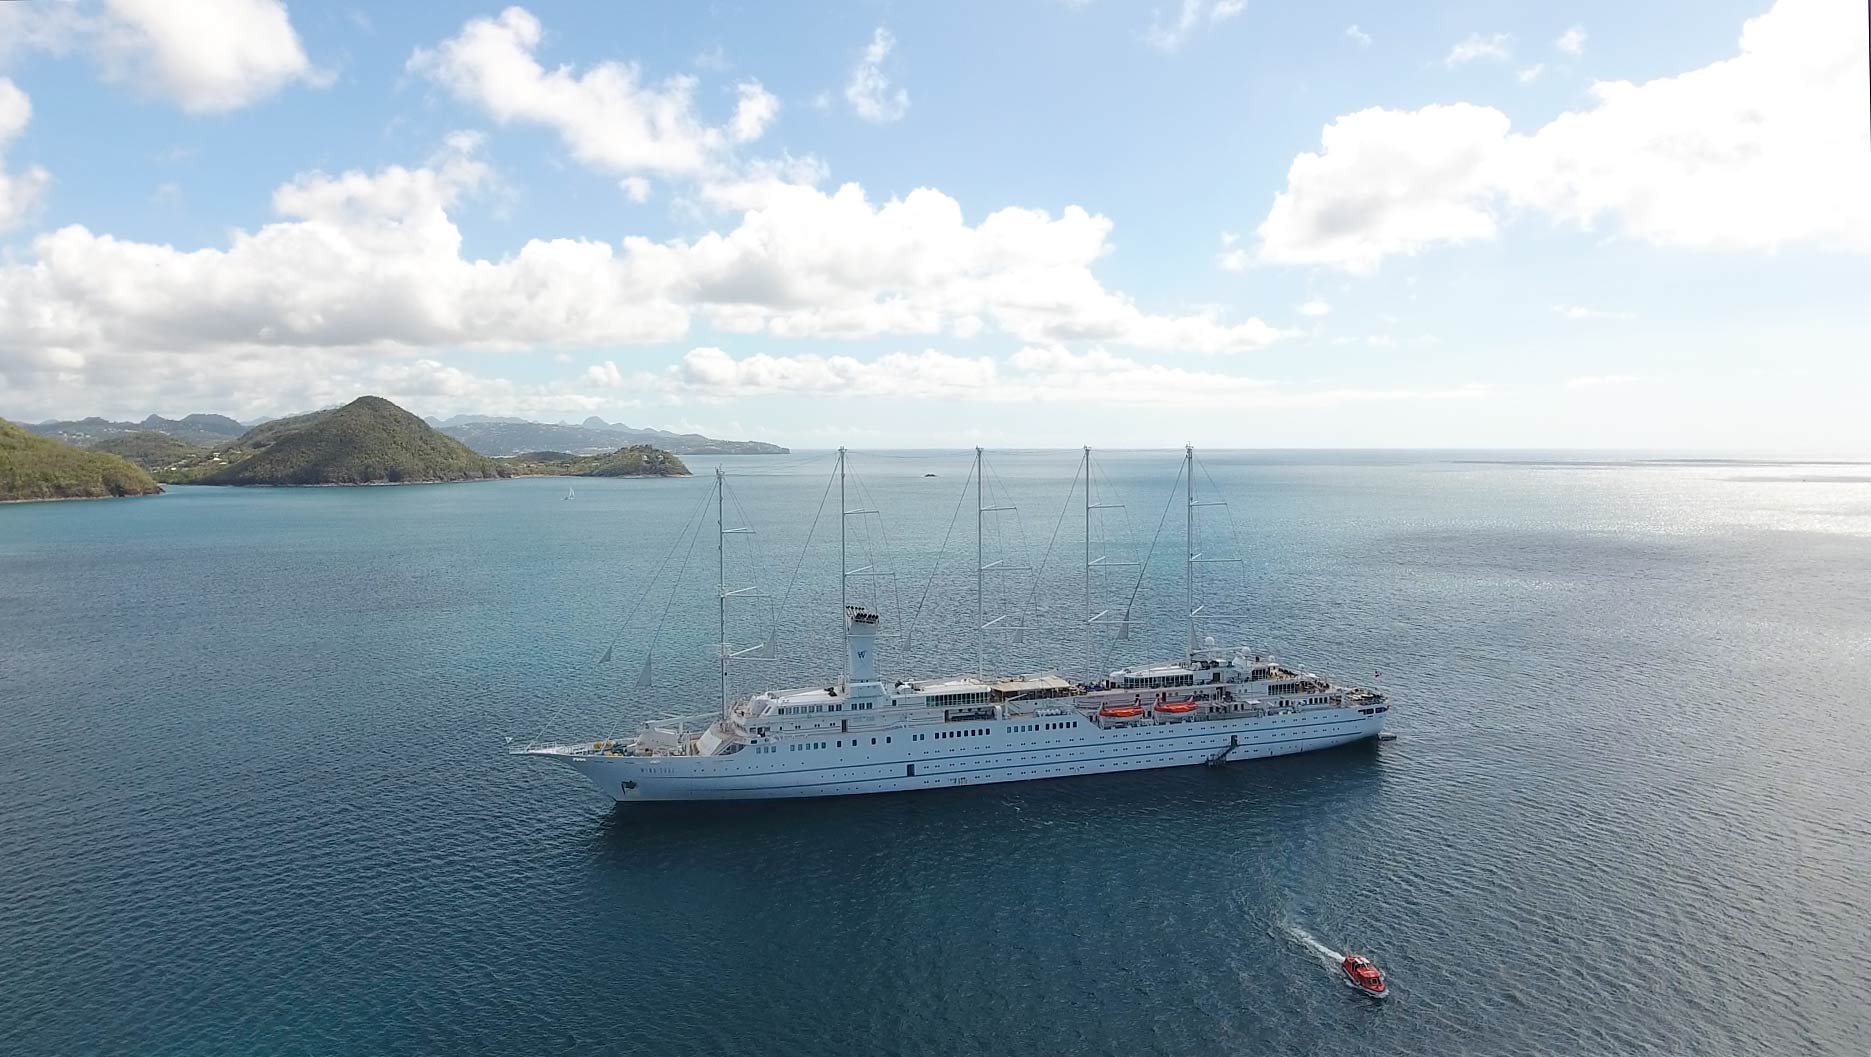 Drone approaches Wind Surf in bay in St. Lucia